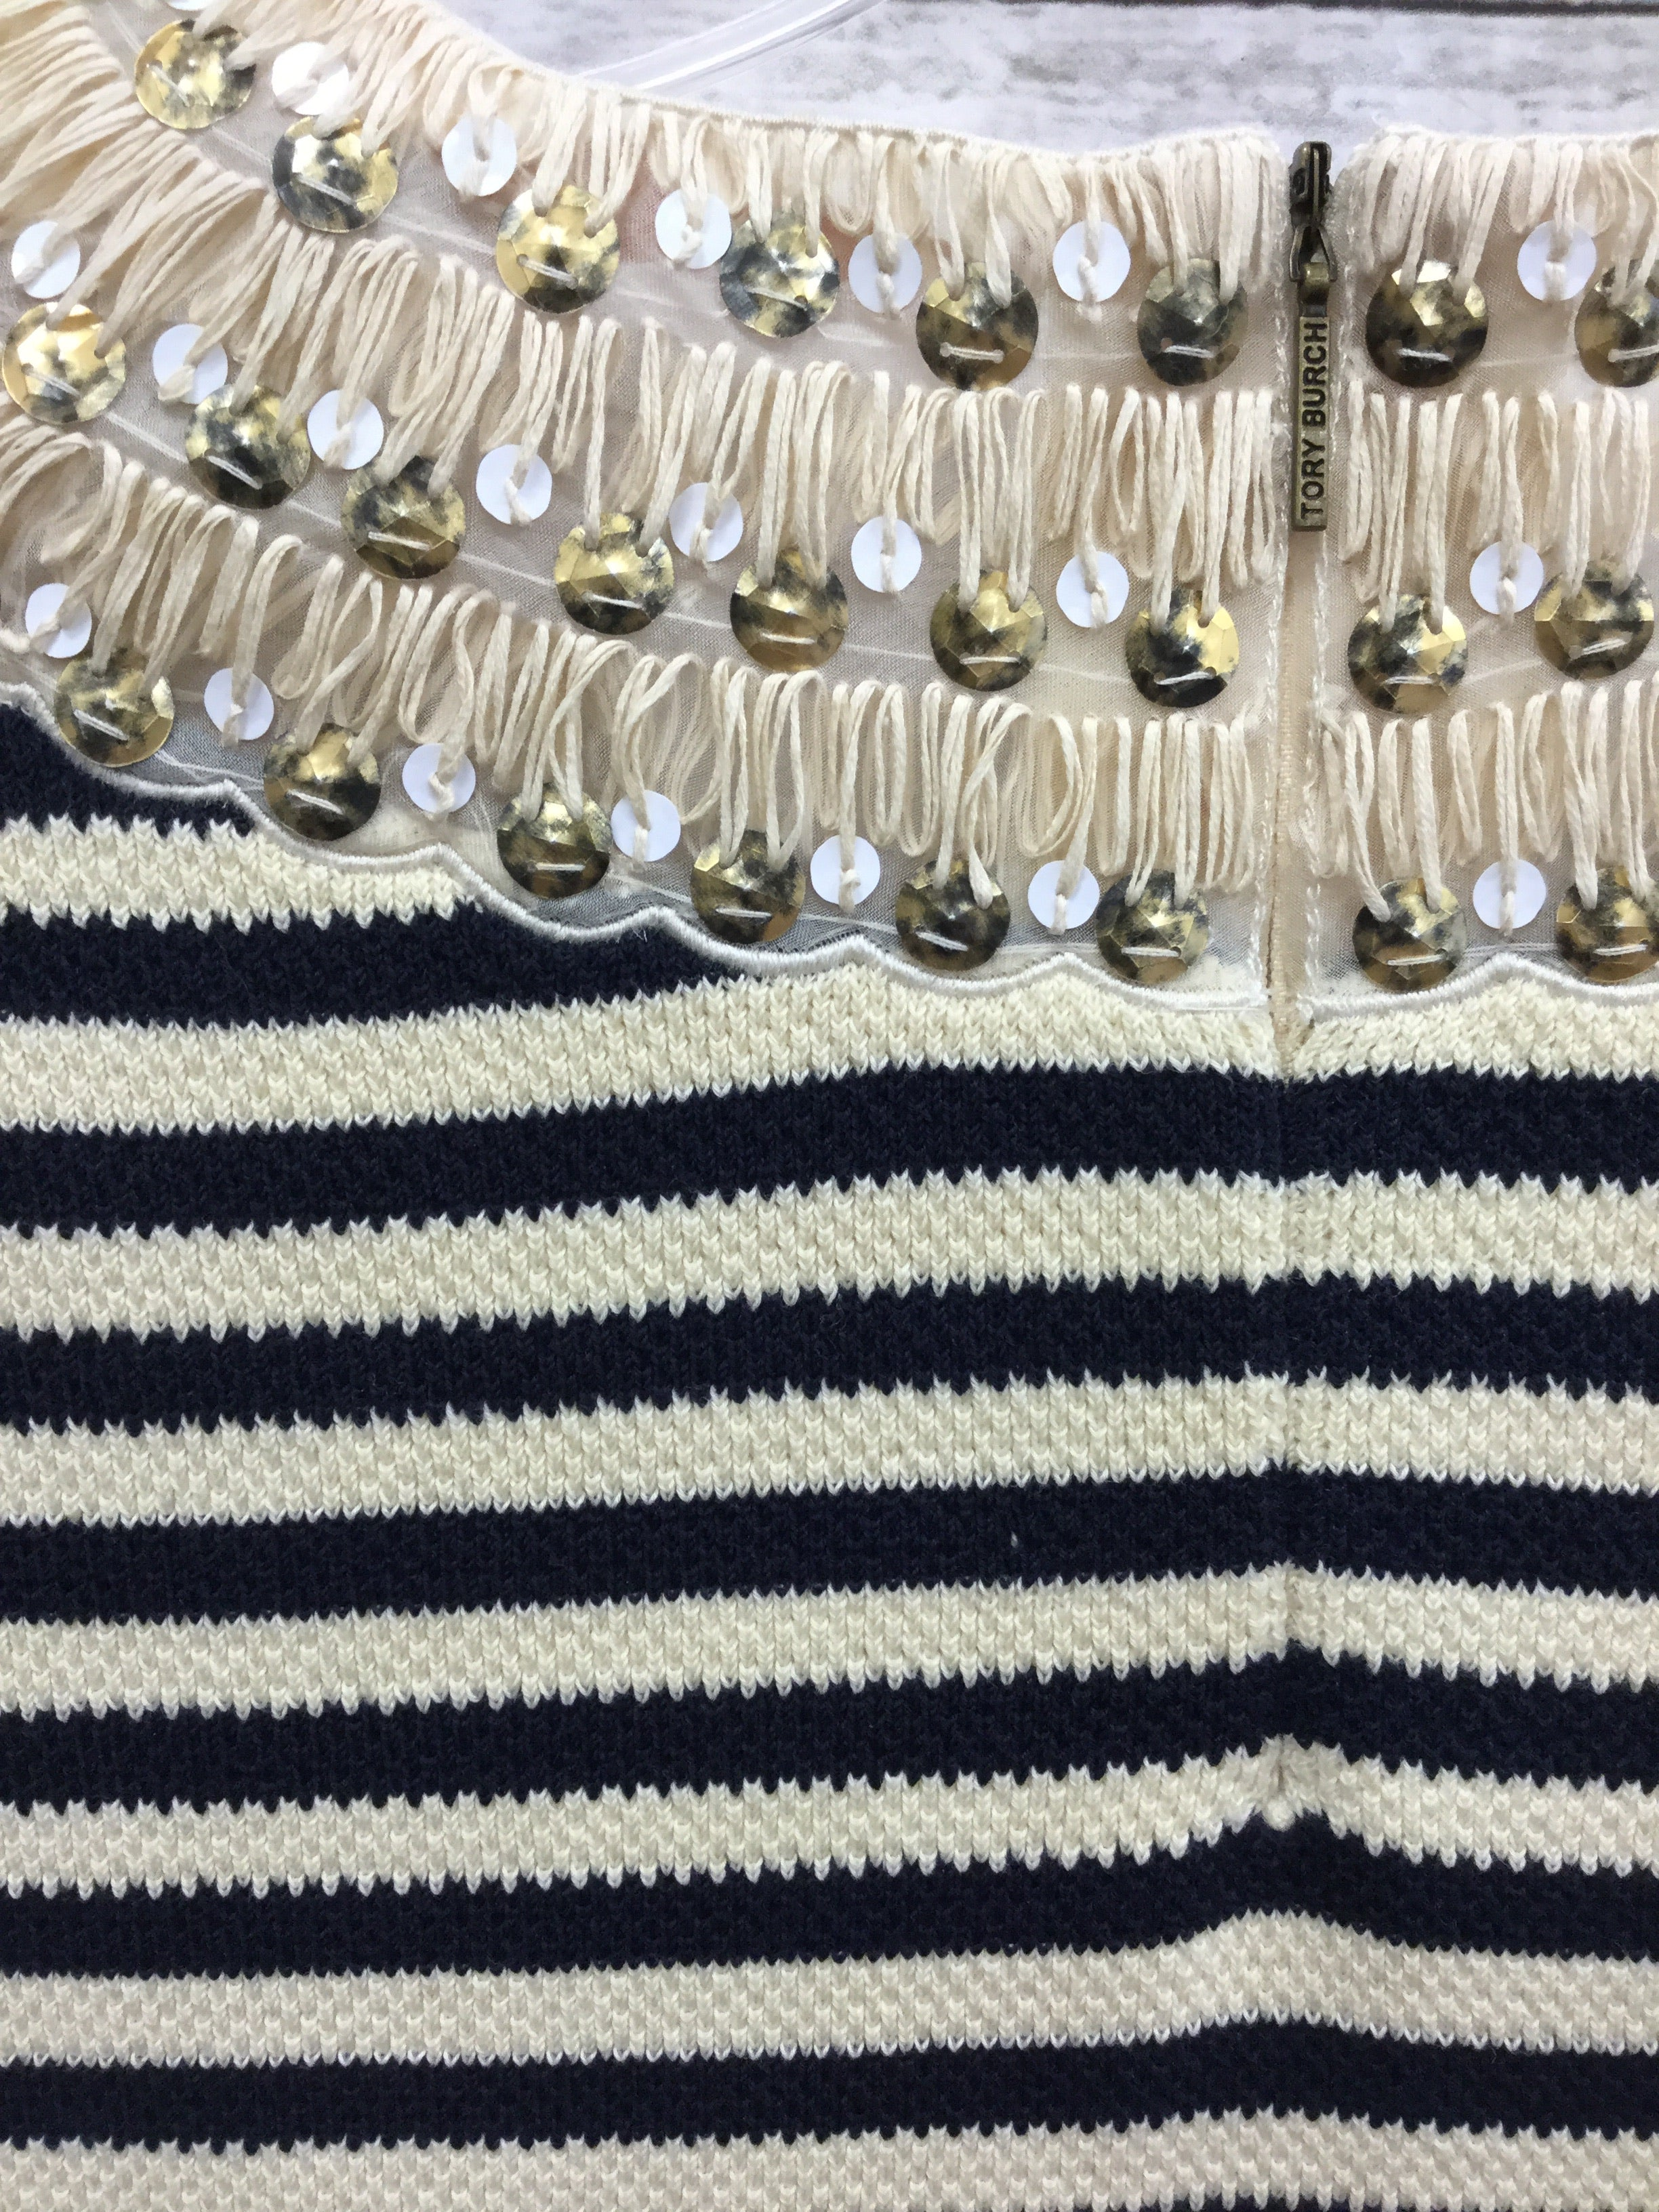 Photo #2 - BRAND: TORY BURCH , STYLE: DRESS SHORT SLEEVELESS , COLOR: STRIPED , SIZE: S , SKU: 127-4169-35679, , CREAM AND BLACK KNIT TORY BURCH DRESS! SEQUIN TRIM DETAIL AROUND NECK AND CAP SLEEVES.